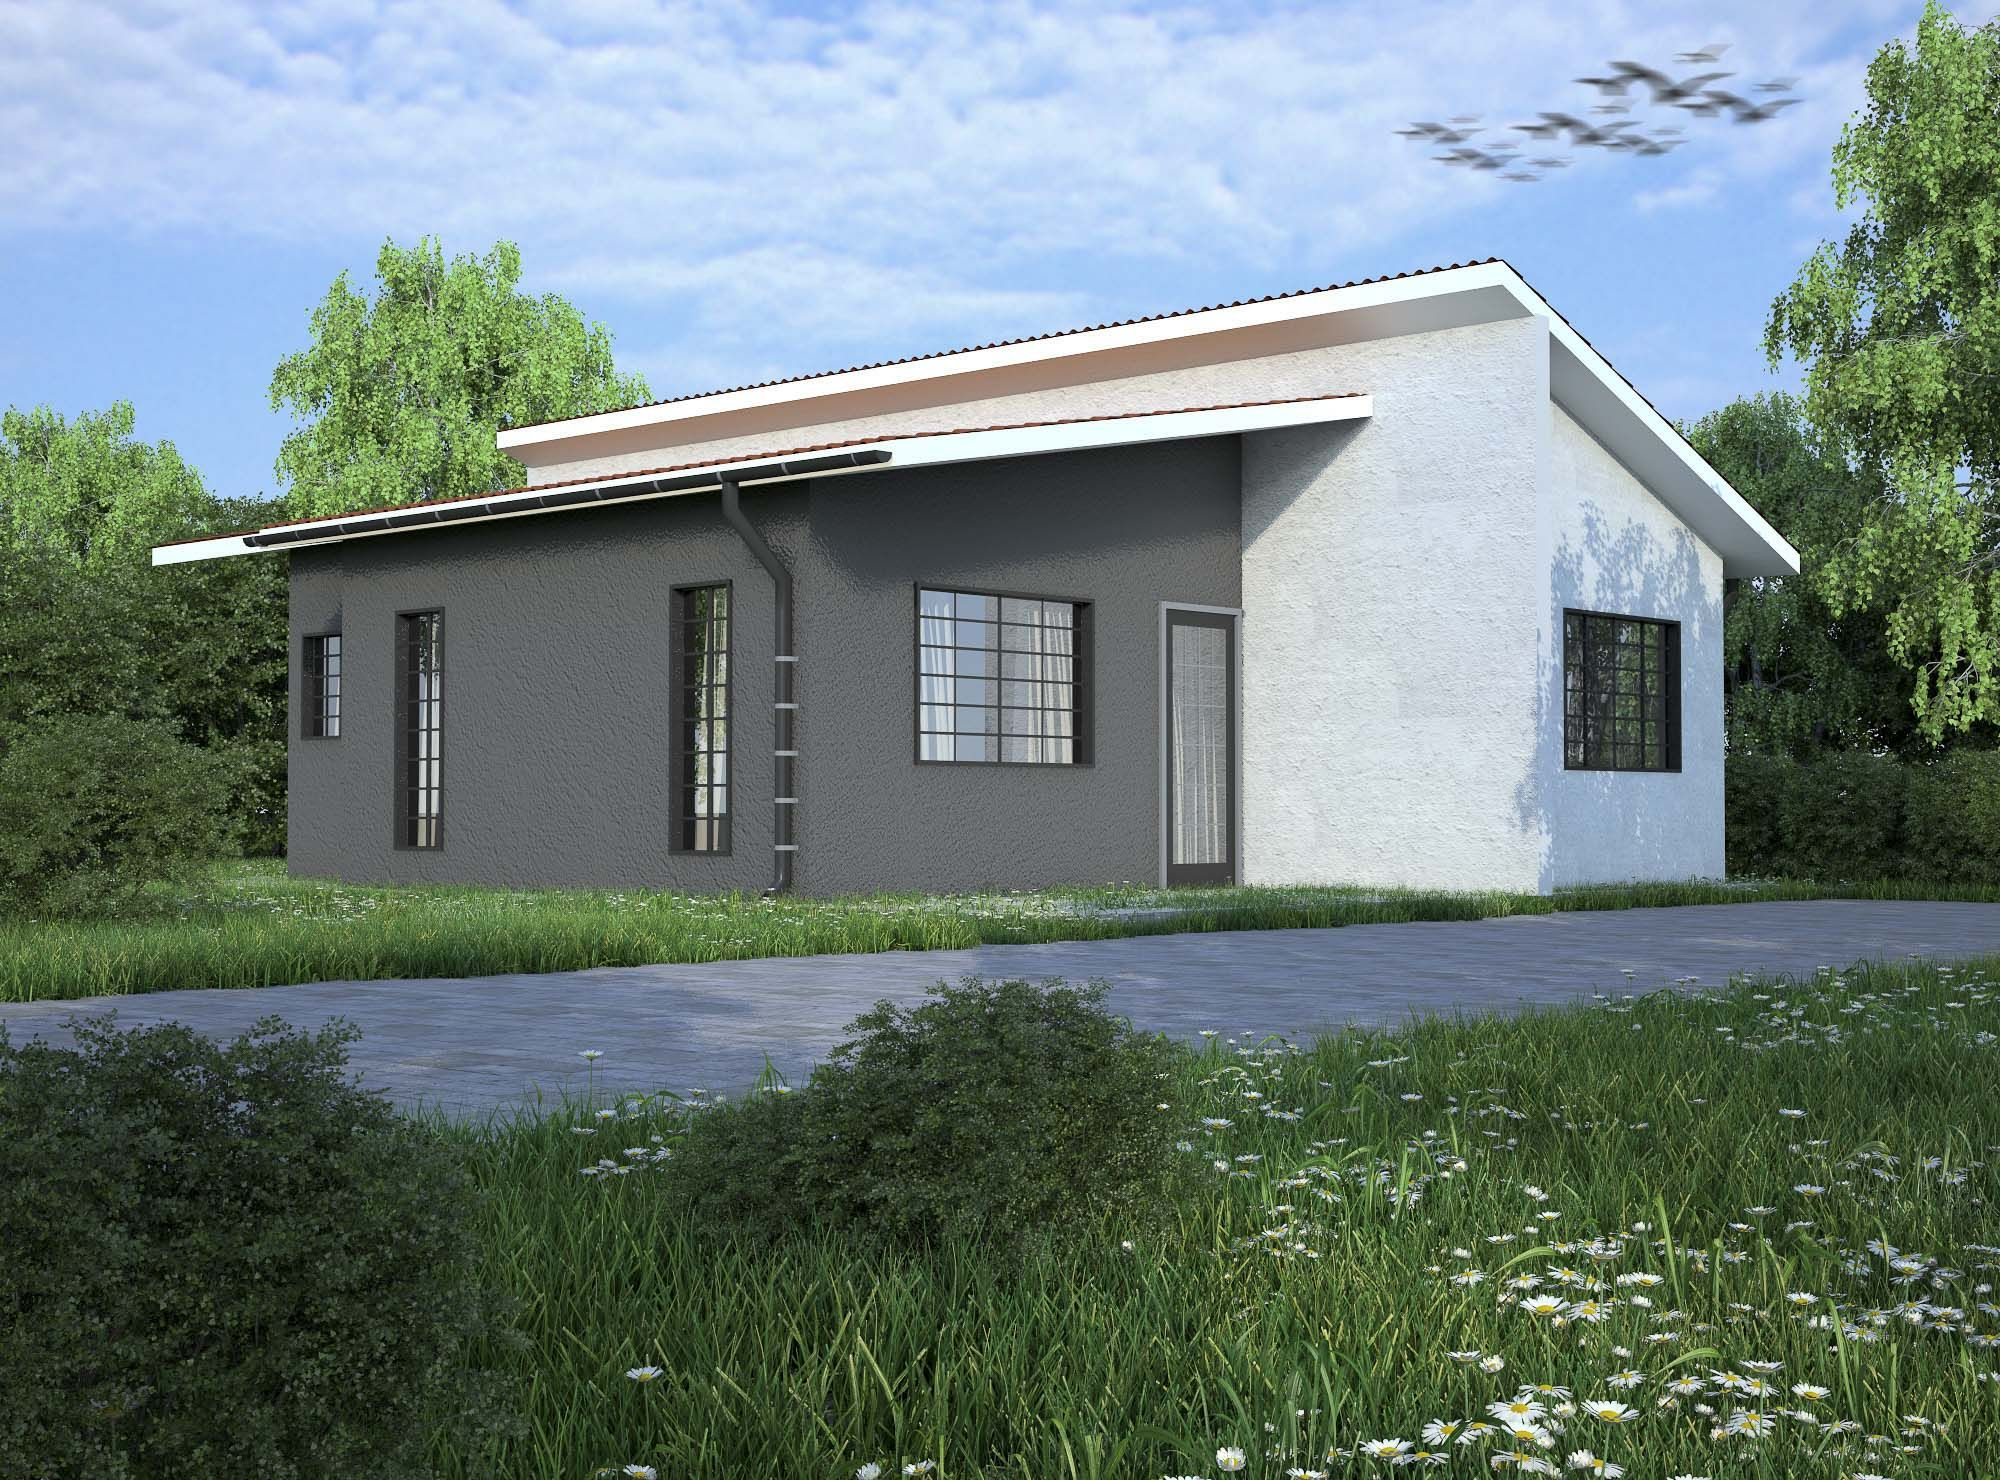 Koto House Designs House Designs In Kenya Small House Design Plans House Design